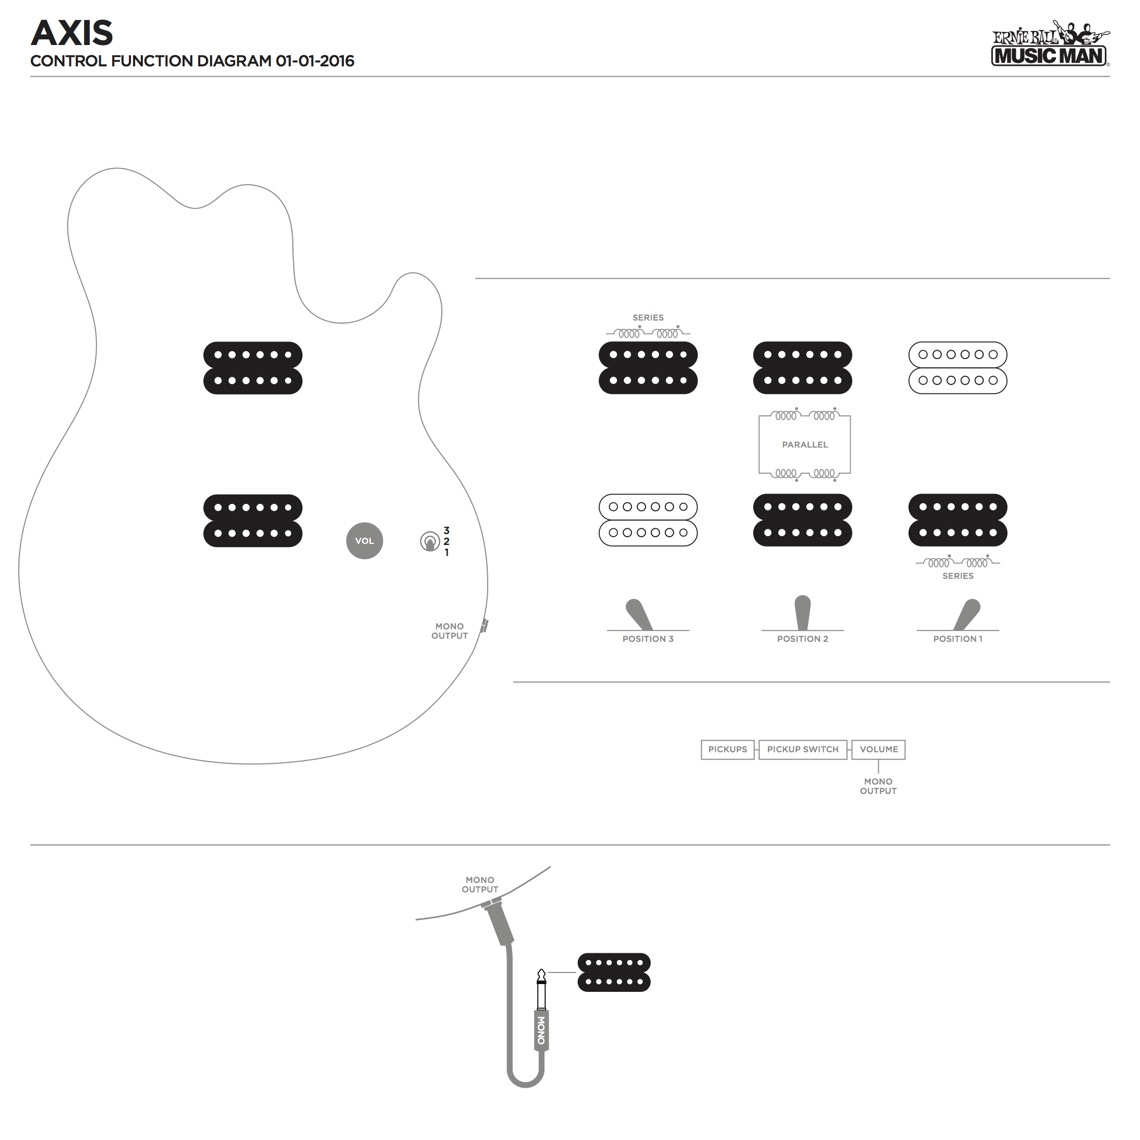 body 3?1454004711 axis guitars ernie ball music man ernie ball wiring diagram at eliteediting.co